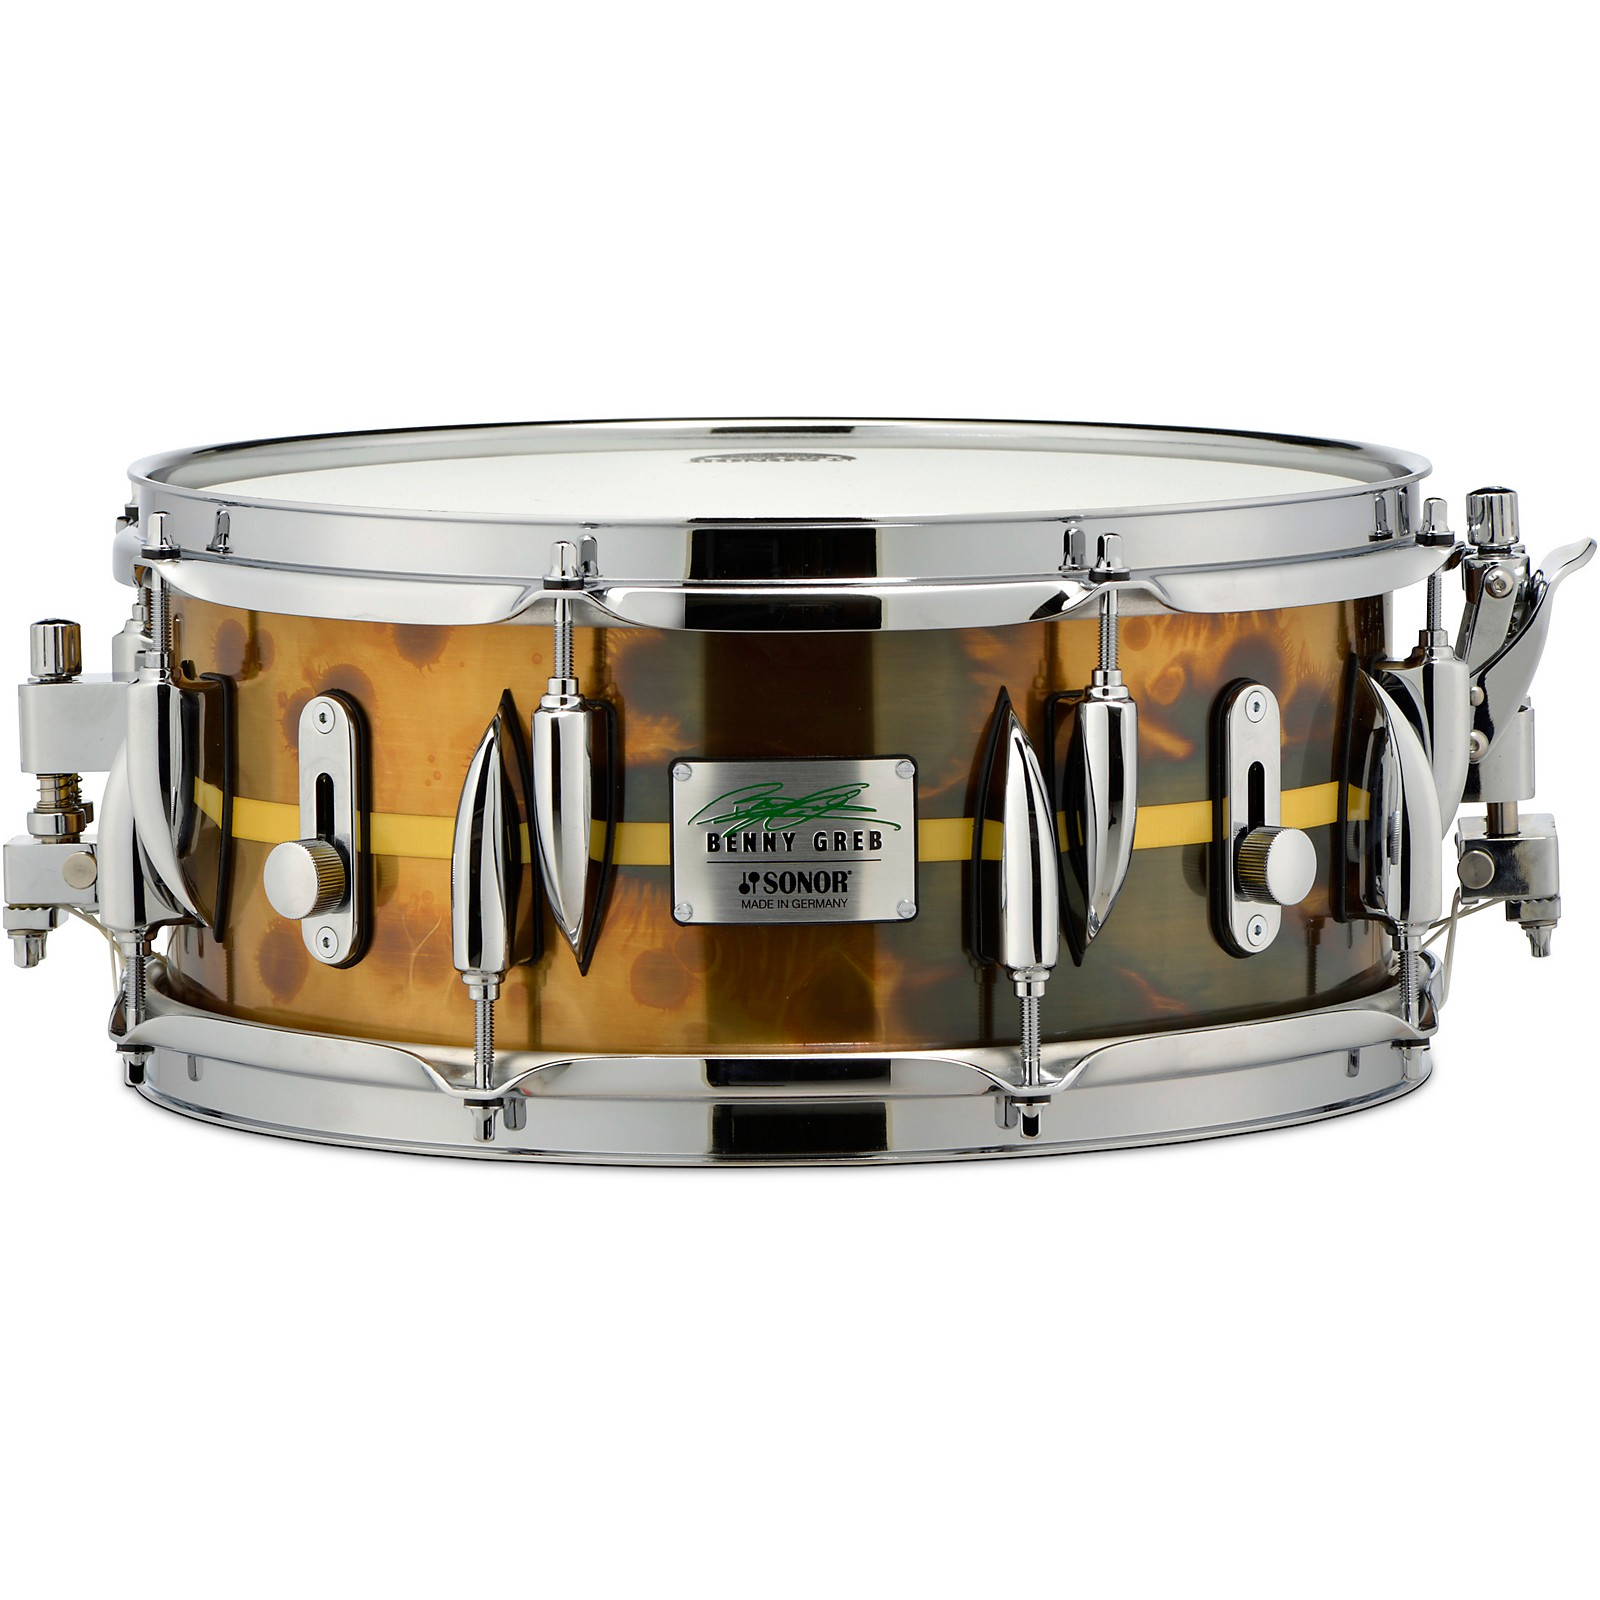 Sonor Benny Greb Brass Signature Snare Drum